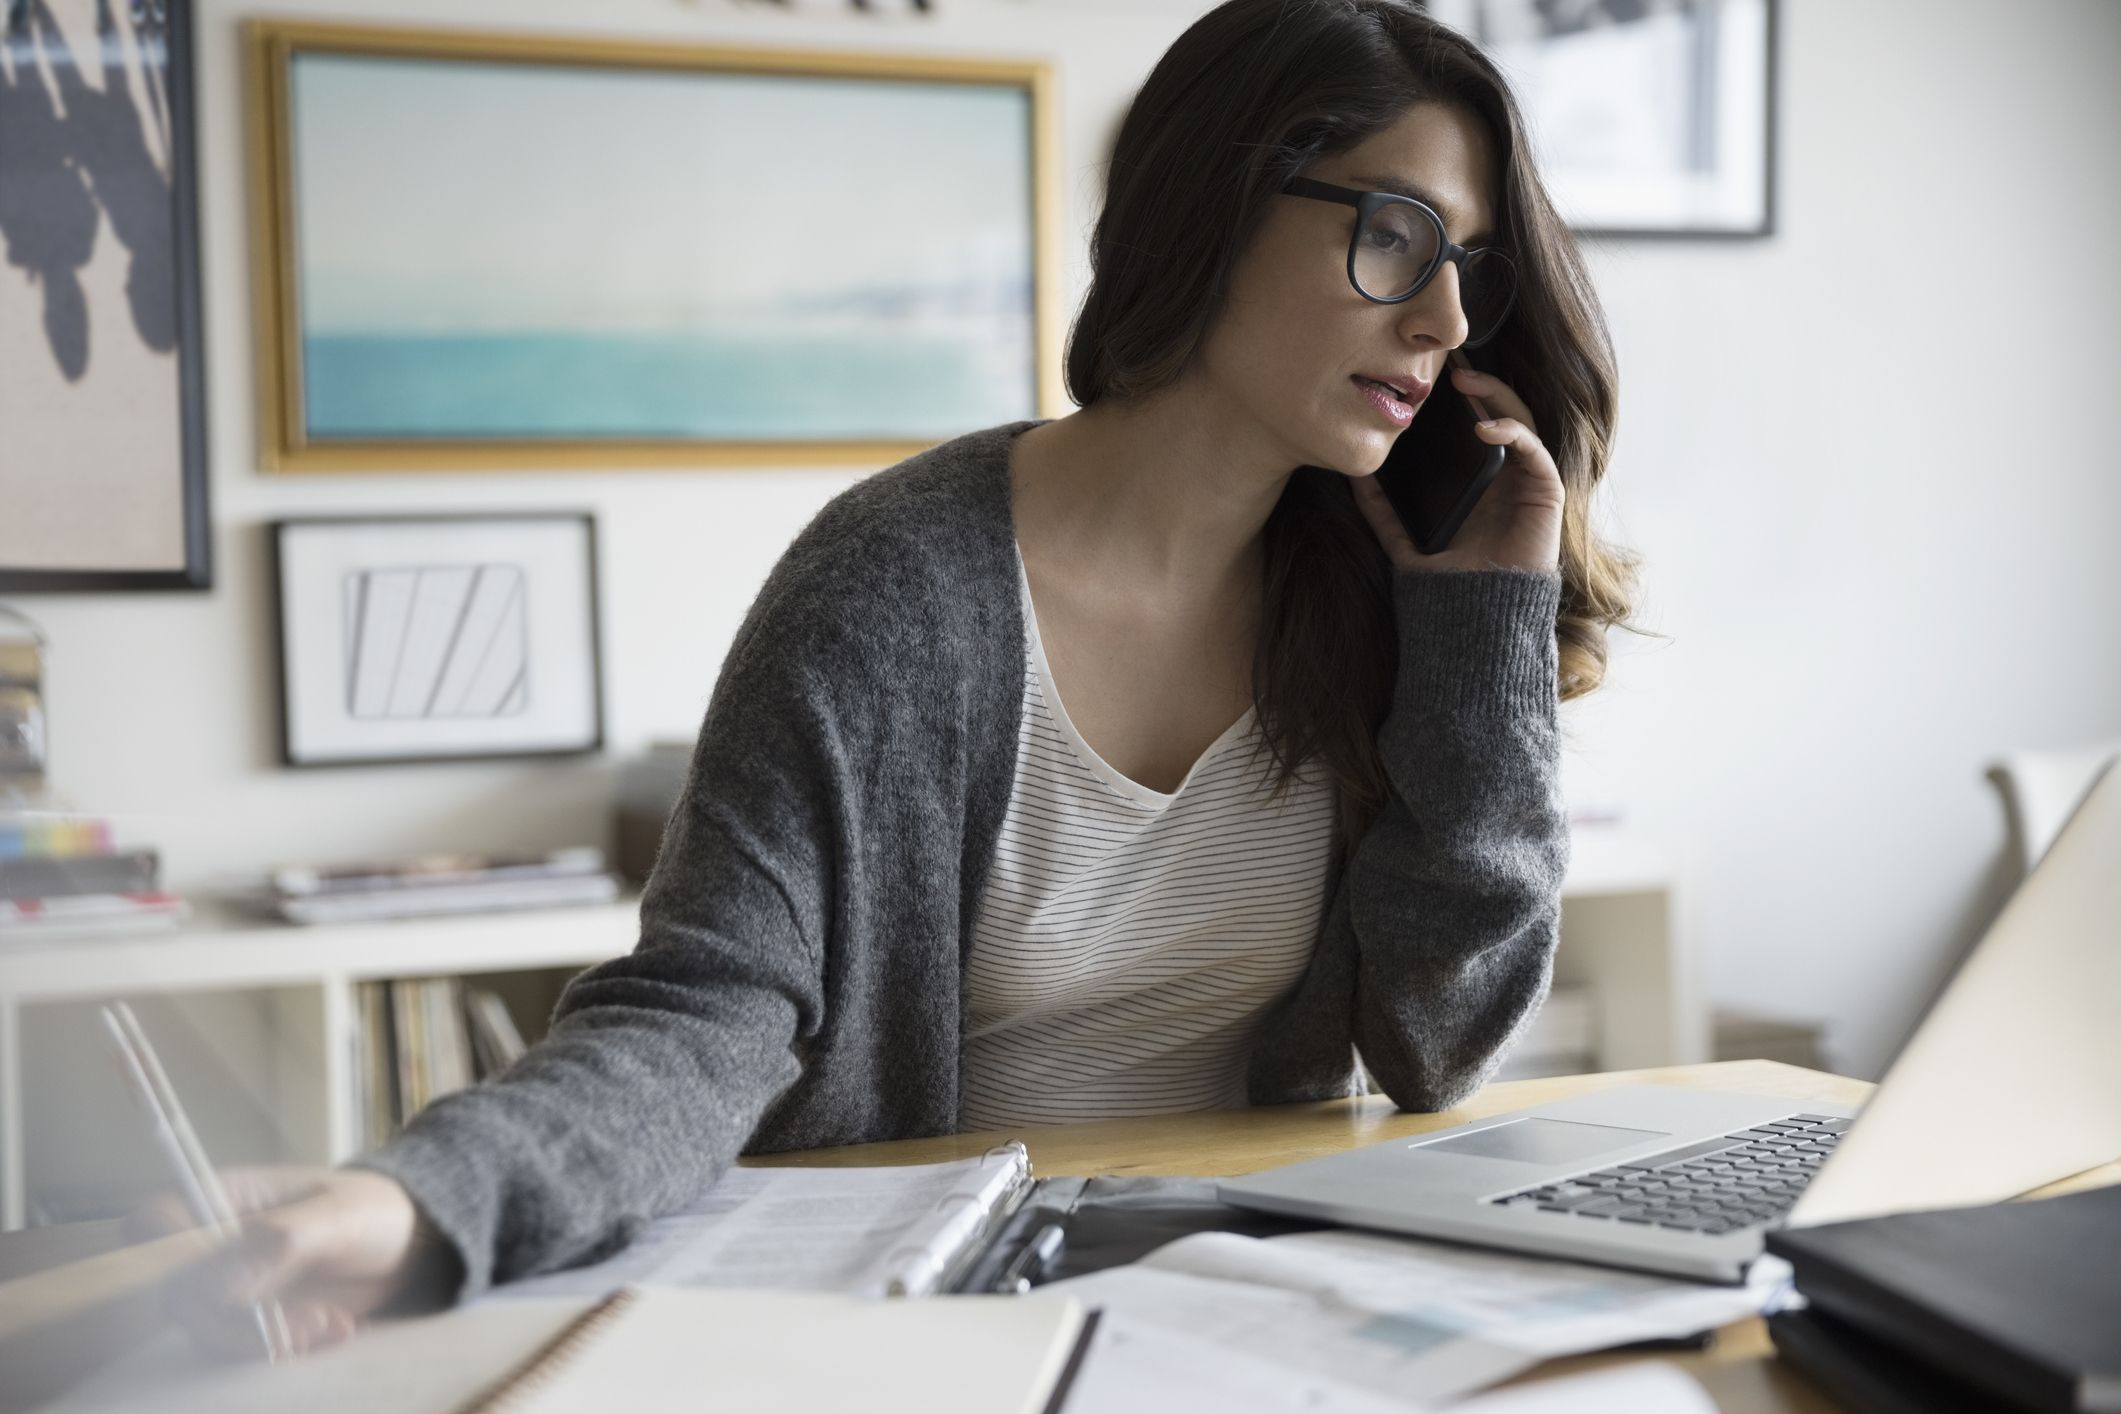 18 Best Work From Home Jobs - Good Ideas for Working at Home